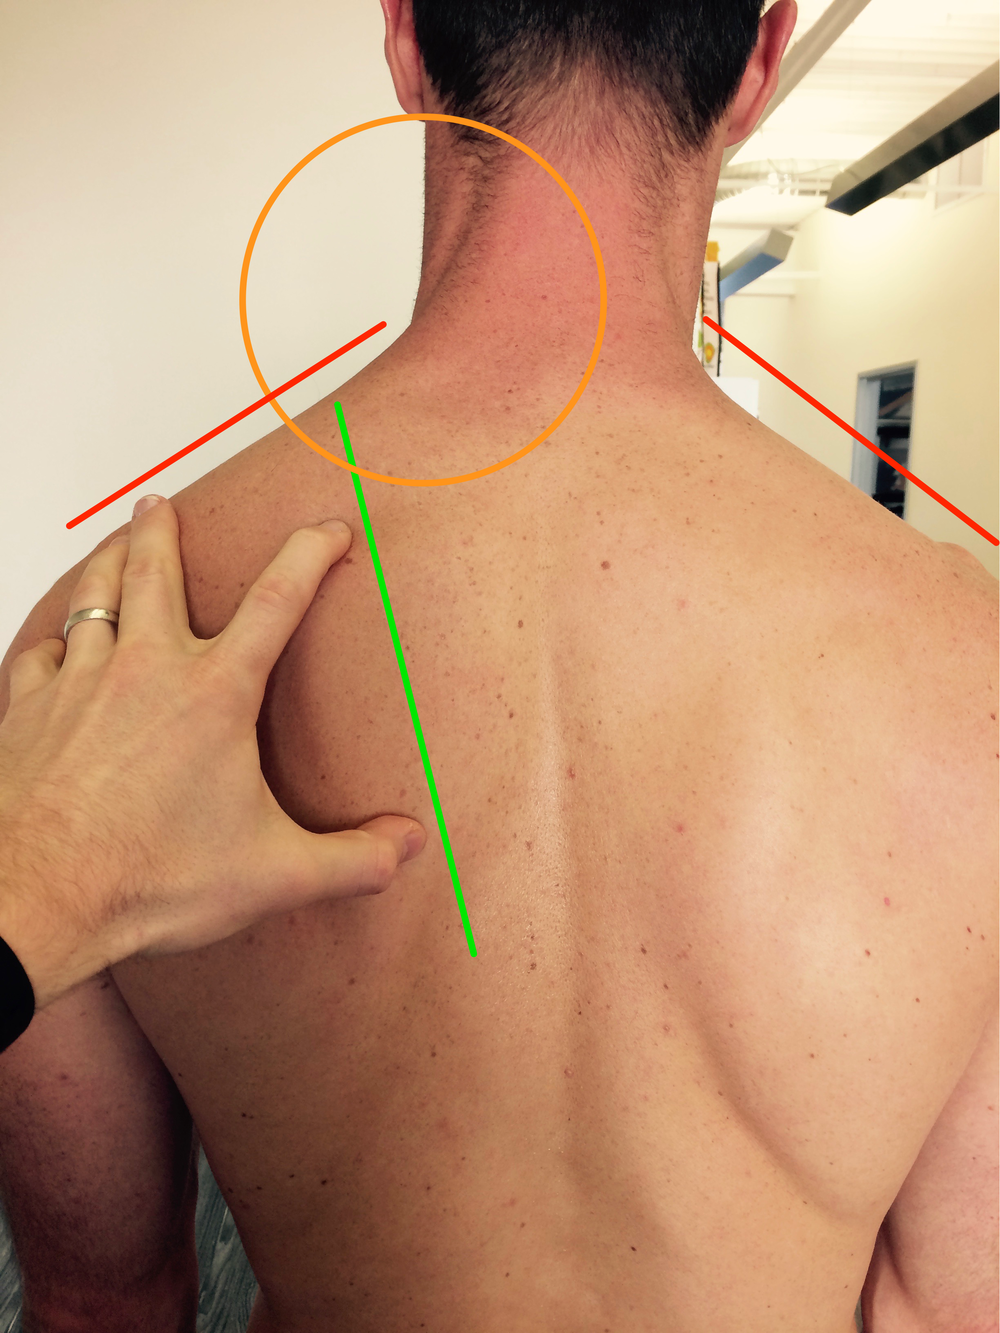 Scapular downward rotation indicated by the inferior border resting closer to the vertebrae than the spine of the scapula.